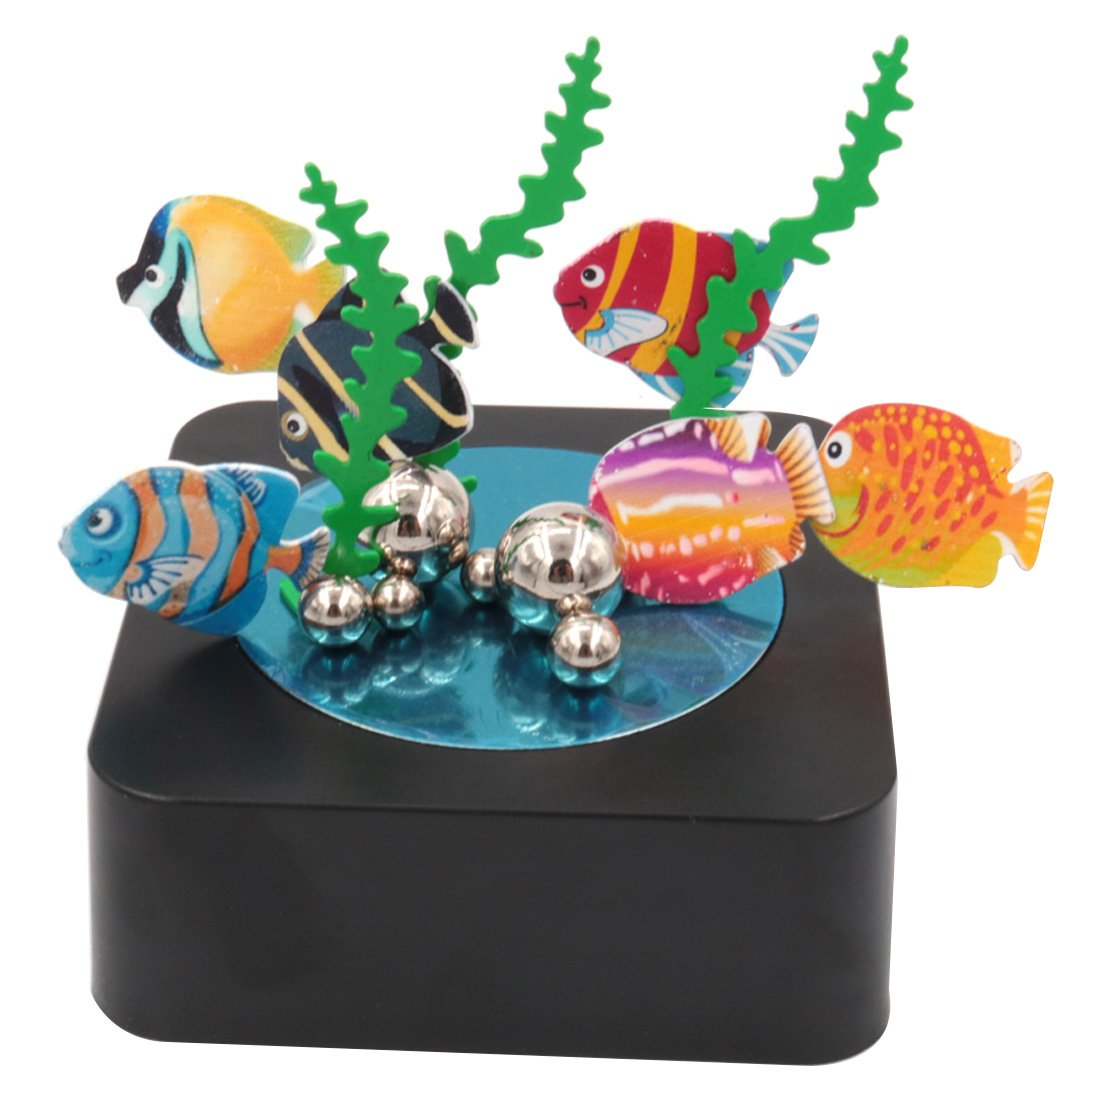 AblueA Magnetic Sculpture Desk Toy Coffee Table Piece As Office Gift Stocking Stuffer (Square Base - Fish)